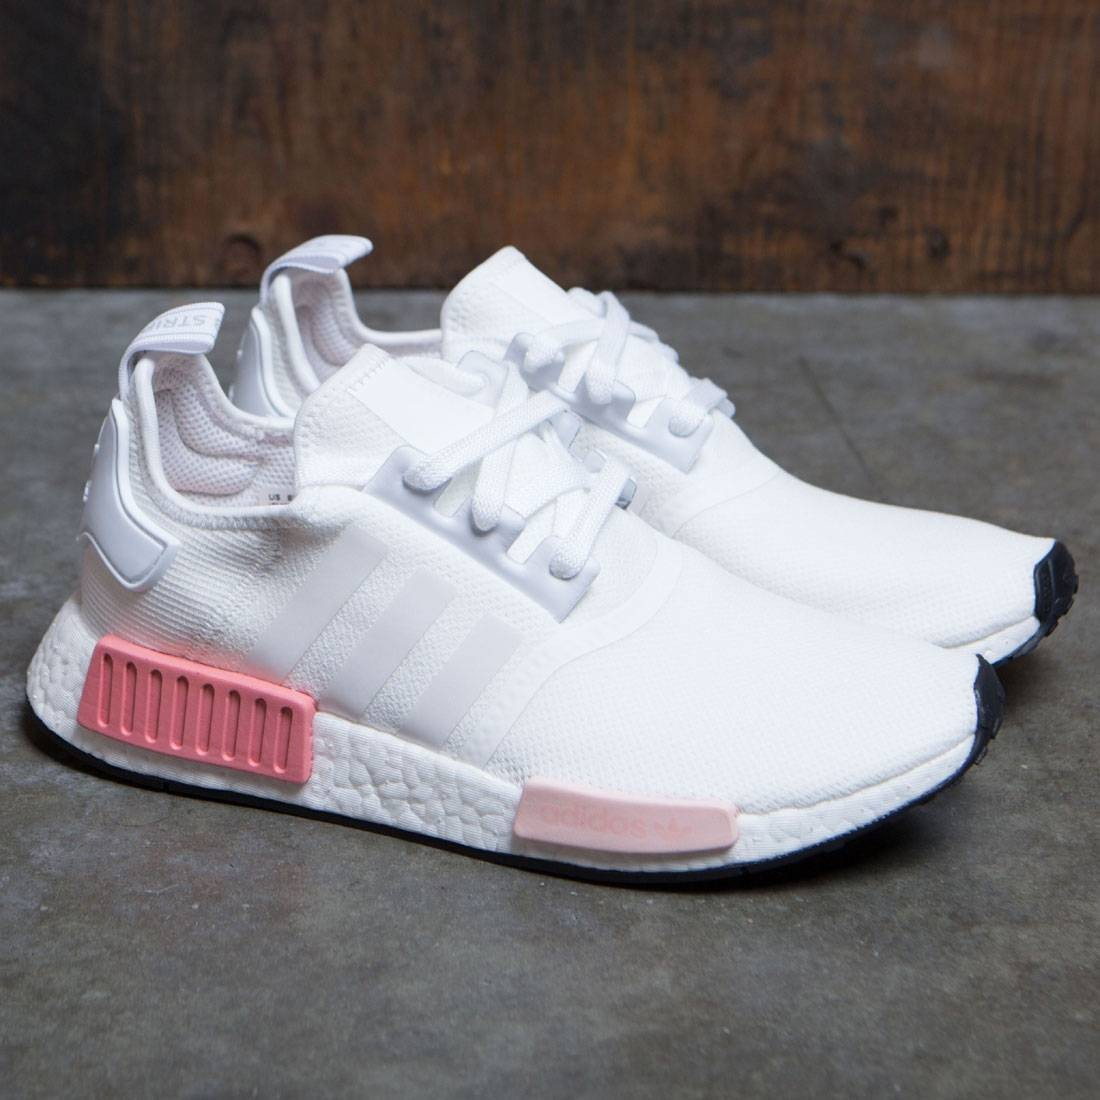 346369fe2d5aad Adidas Women NMD R1 W (white   footwear white   icey pink)